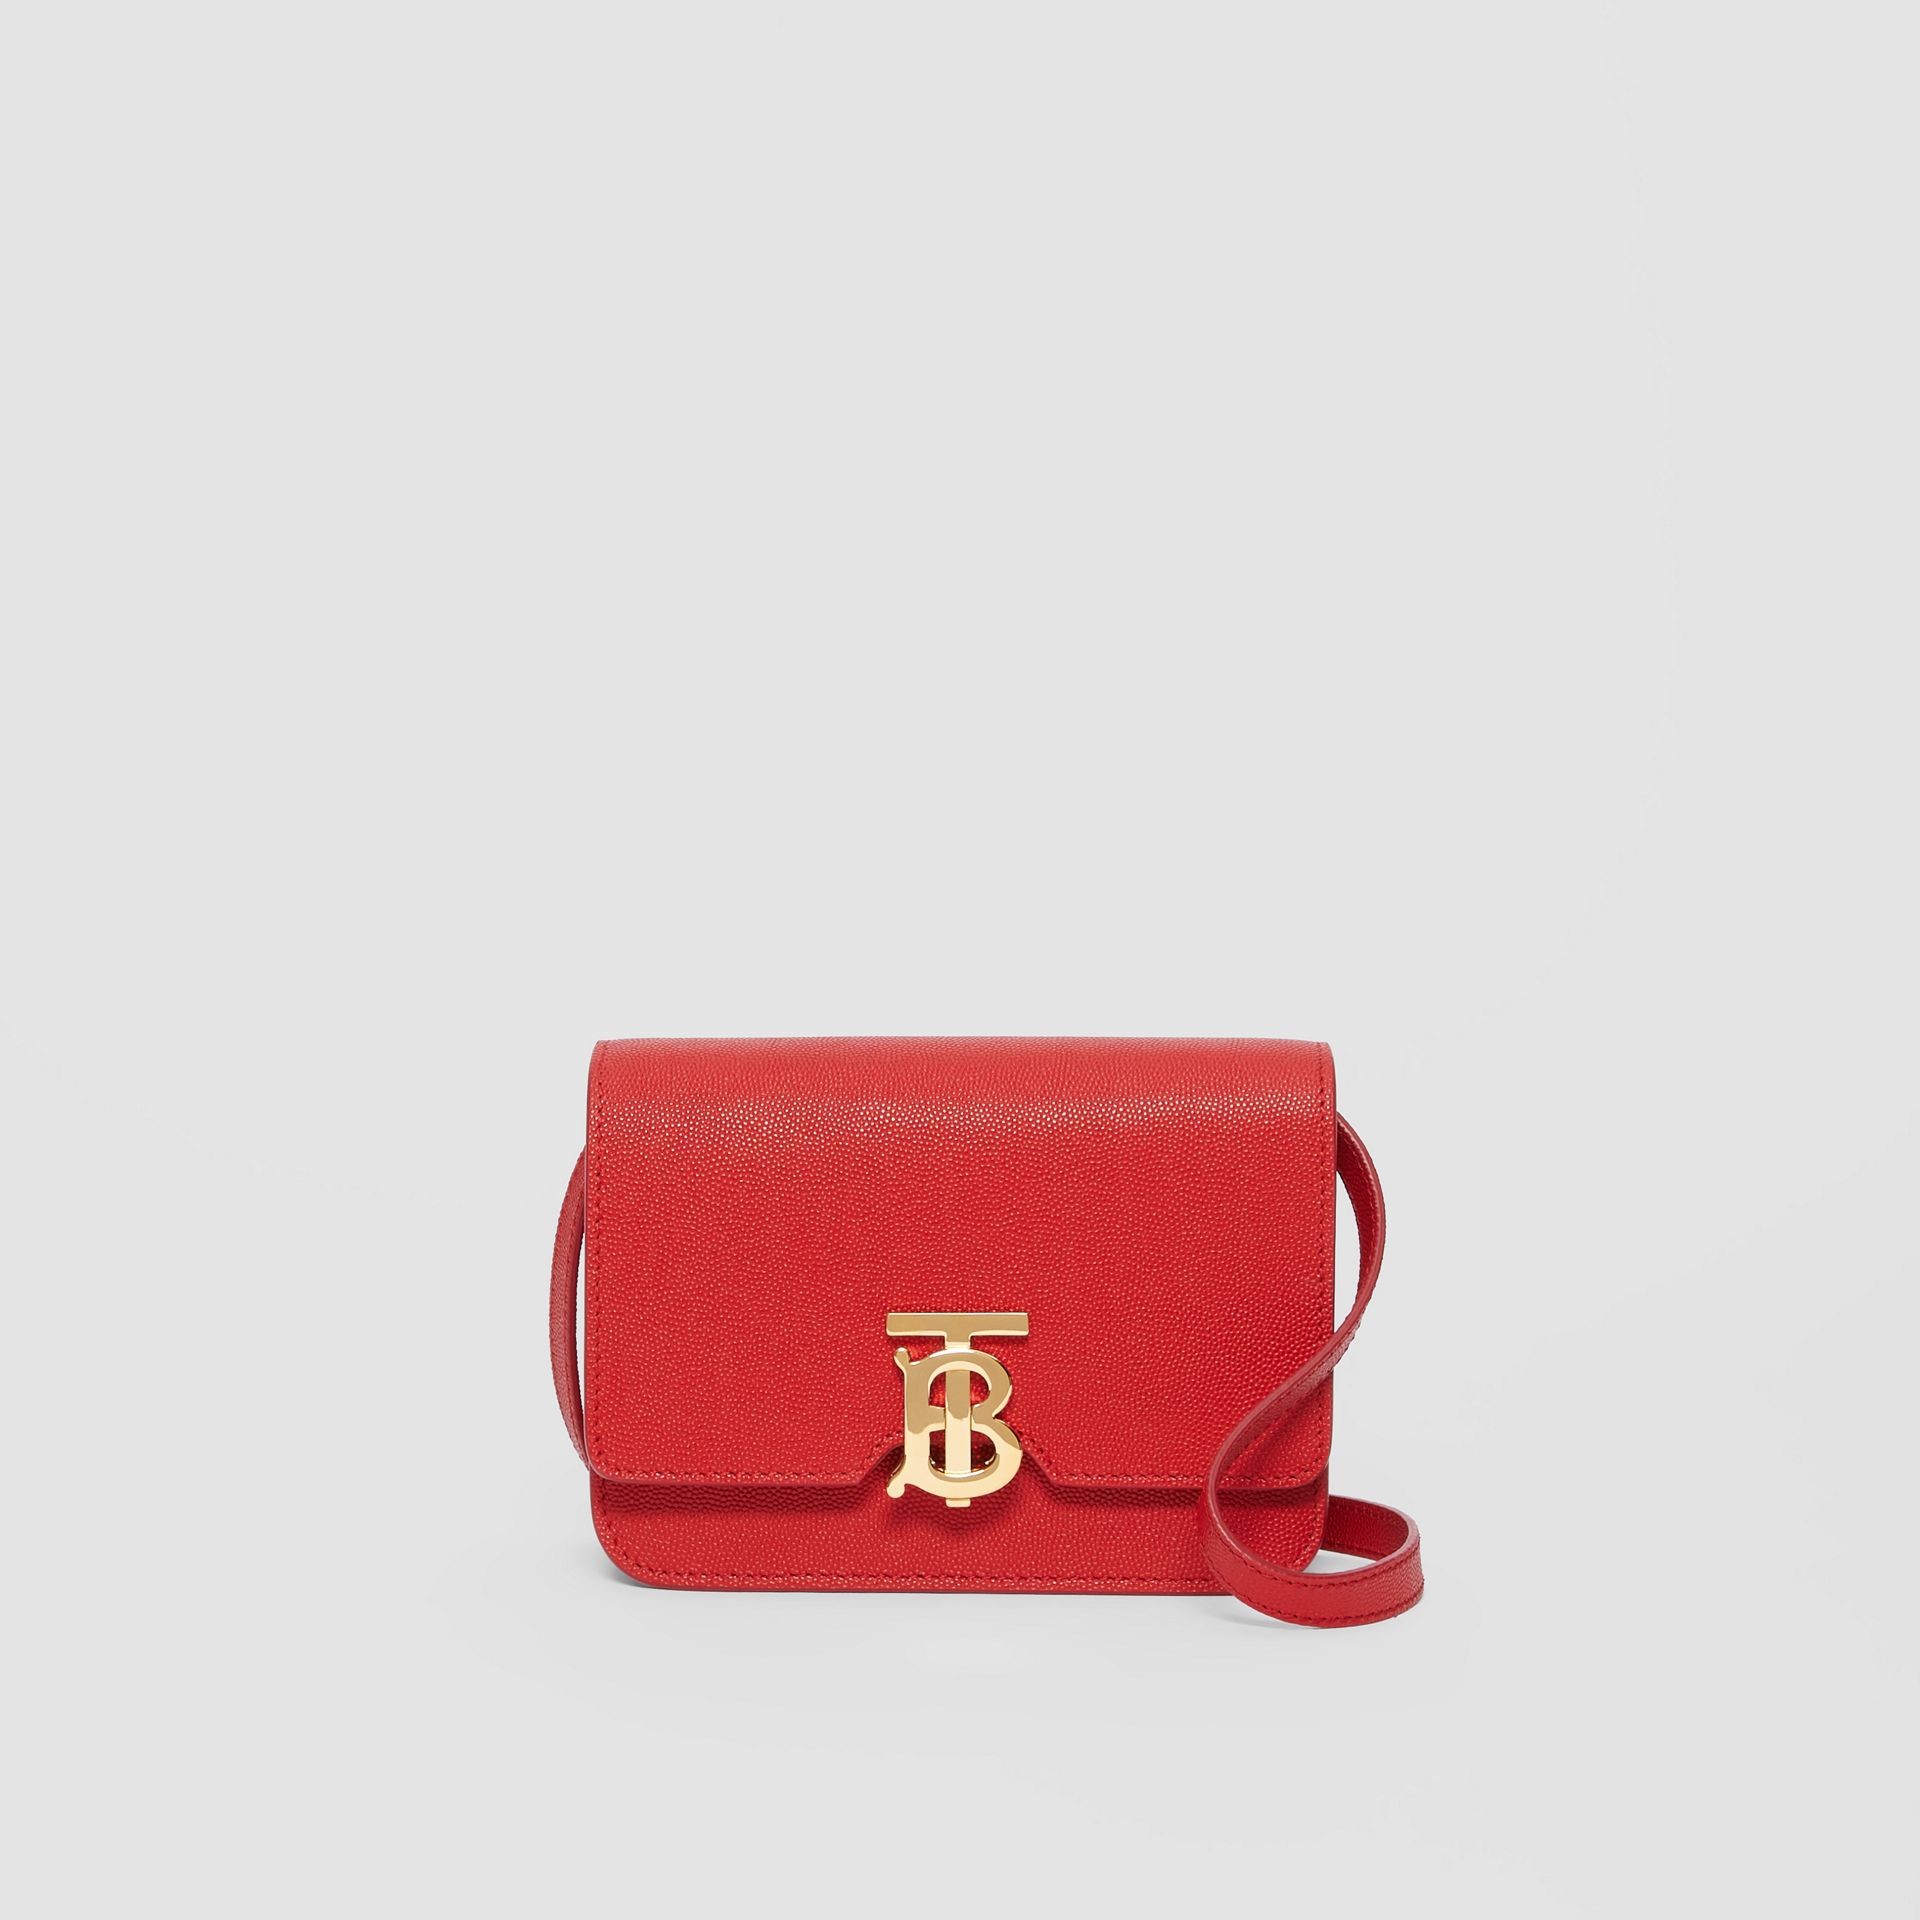 Mini Grainy Leather TB Bag in Bright Red - Women | Burberry Hong Kong S.A.R - gallery image 0